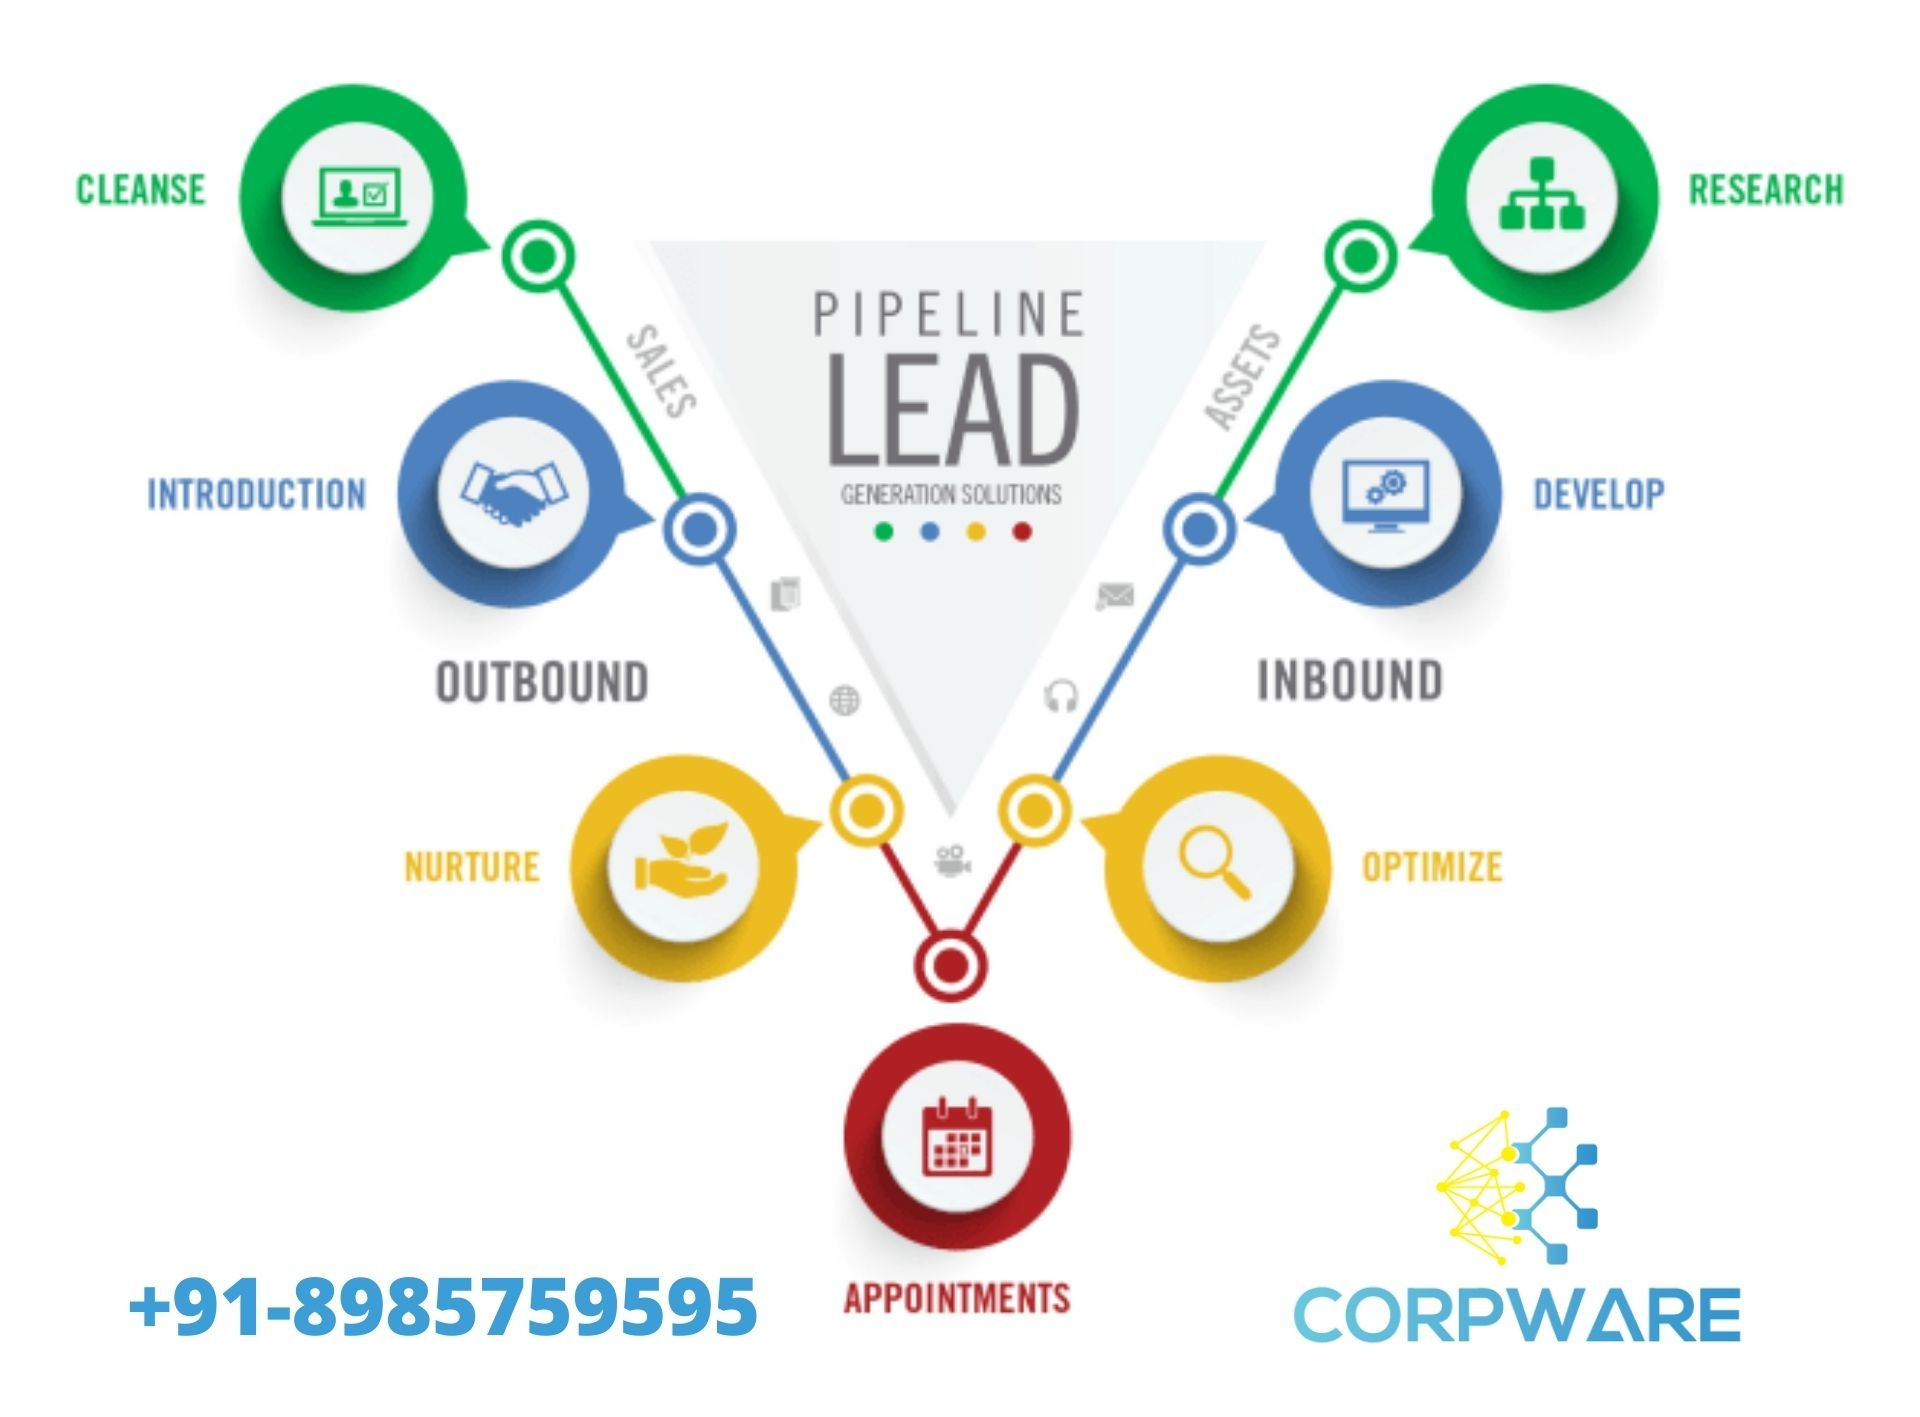 Lead Generation Lead Generation Data Entry Generation